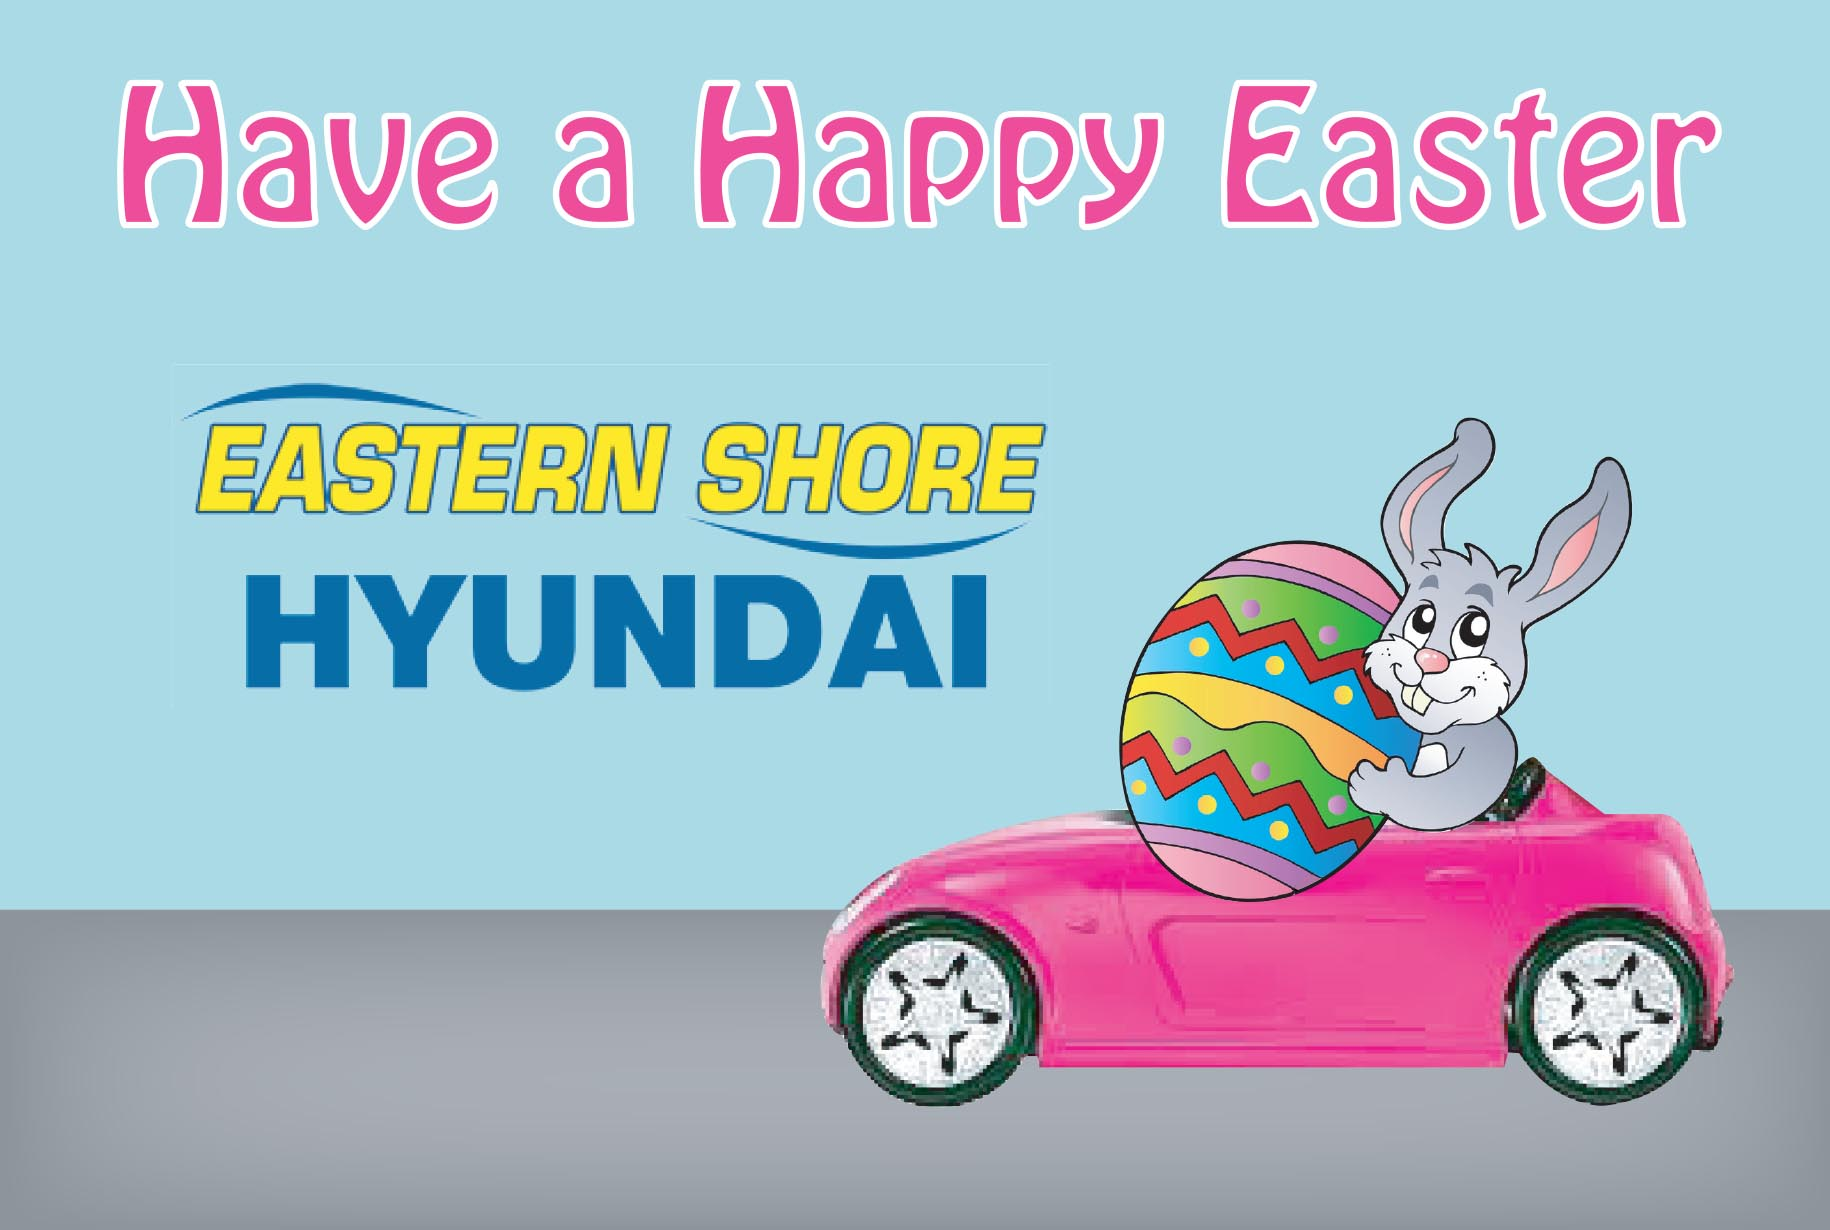 Eastern Shore Hyundai Postcard